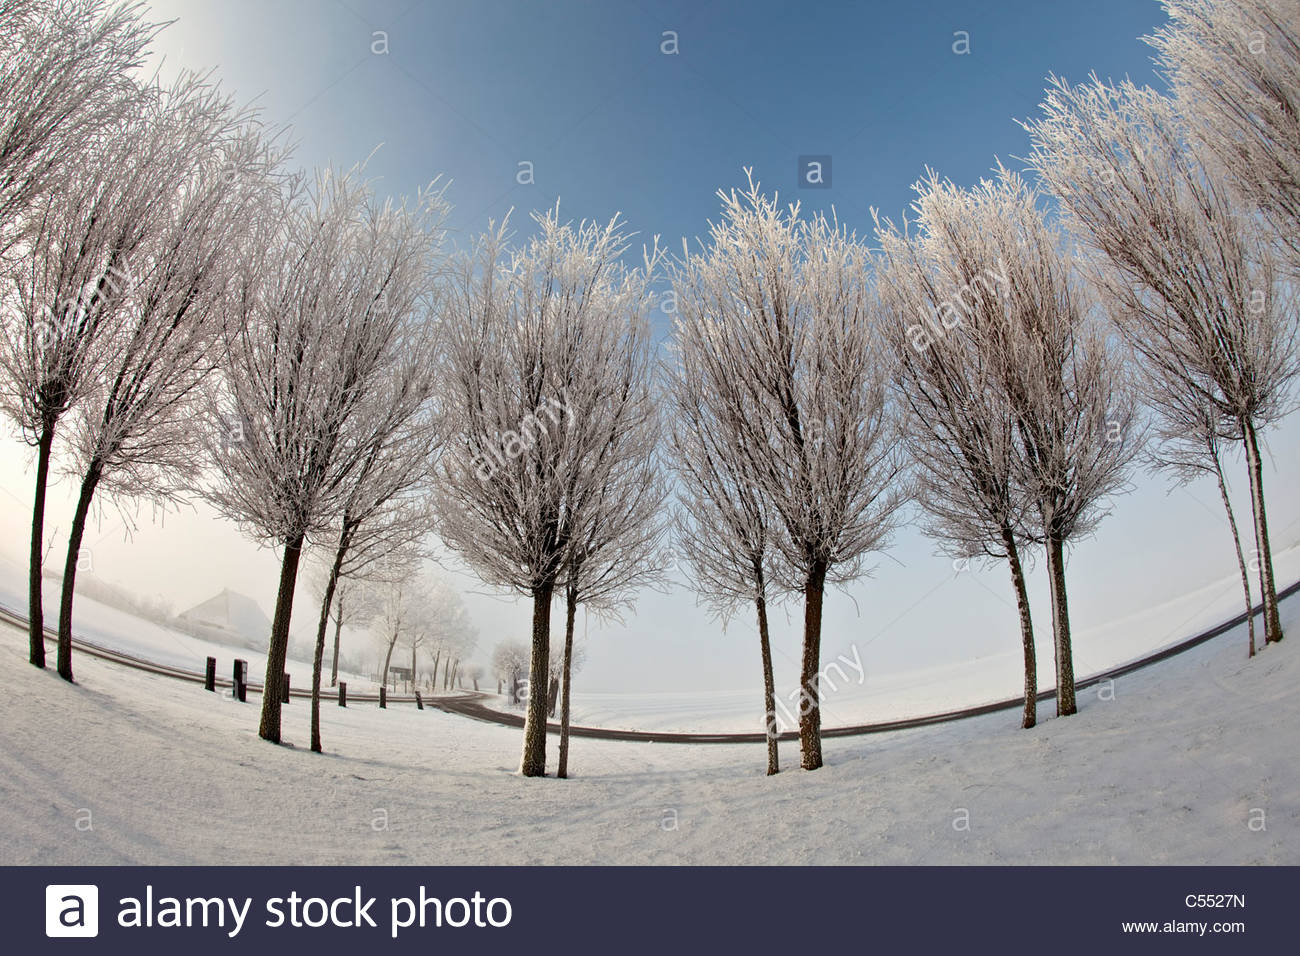 The Netherlands, Ferwoude, Country road and trees in snow and frost. Fish-eye lens. - Stock Image